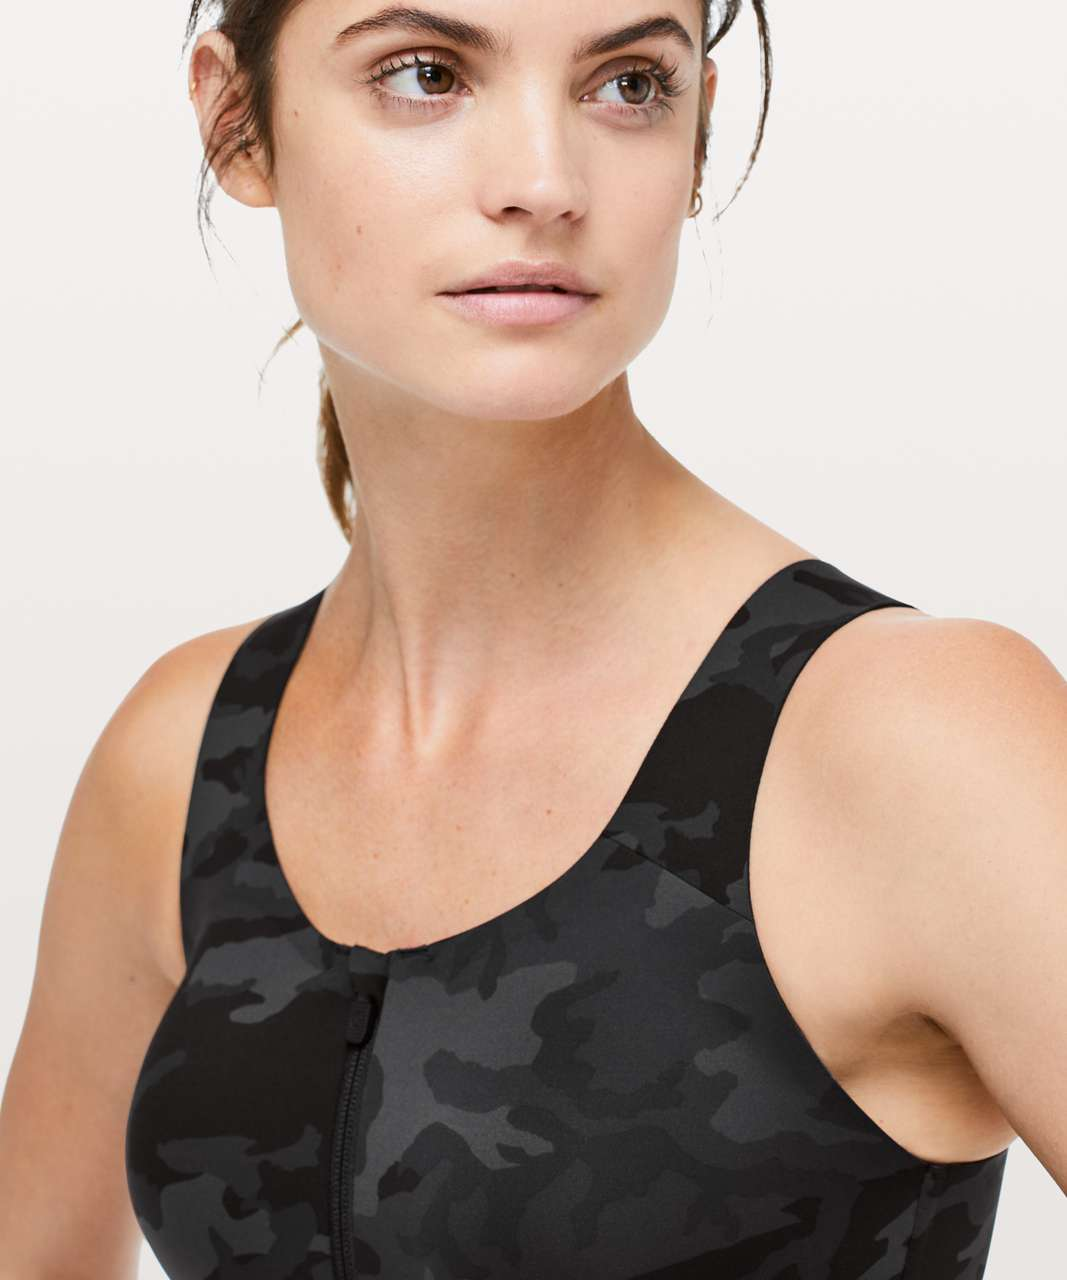 Lululemon Enlite Bra *Zip Front - Incognito Camo Multi Grey (Second Release)